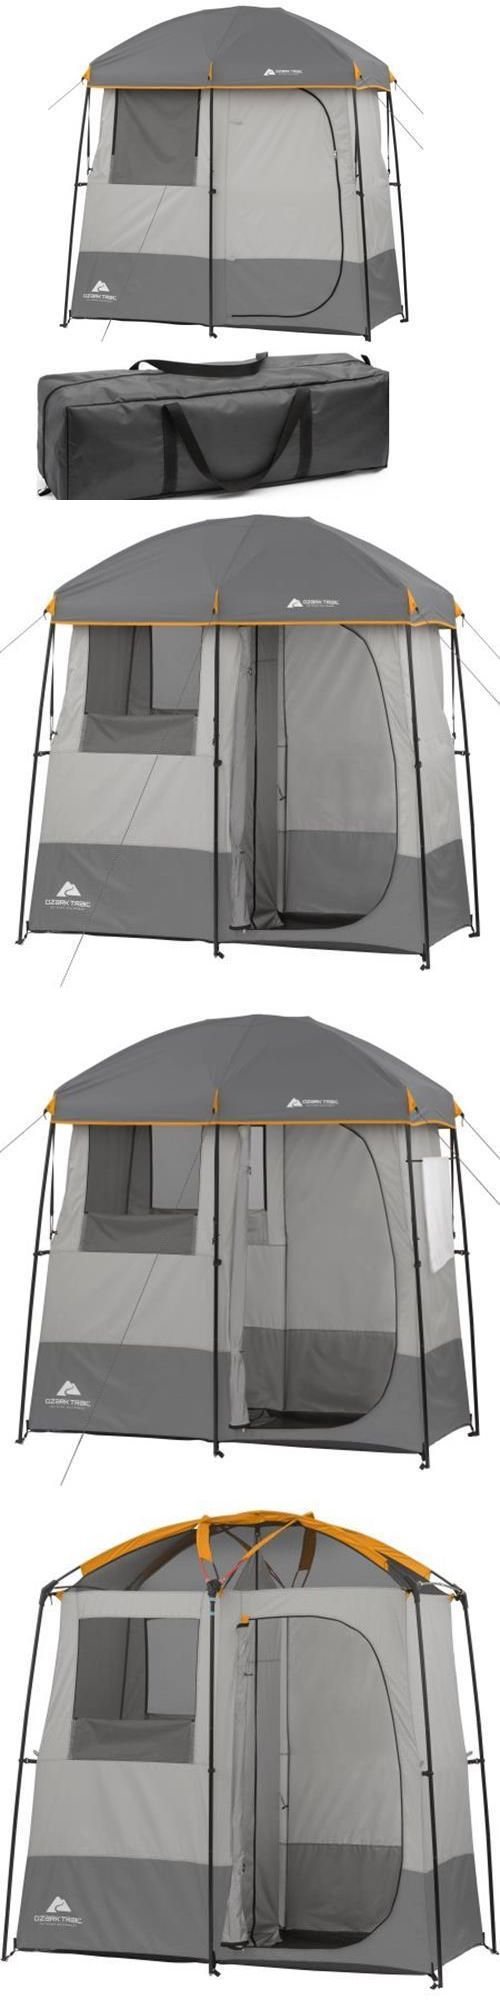 Tents 179010 C&ing Shower Tent Outdoor Changing Room Privacy Pop Up Portable Toilet Tents - & Tents 179010: Camping Shower Tent Outdoor Changing Room Privacy ...